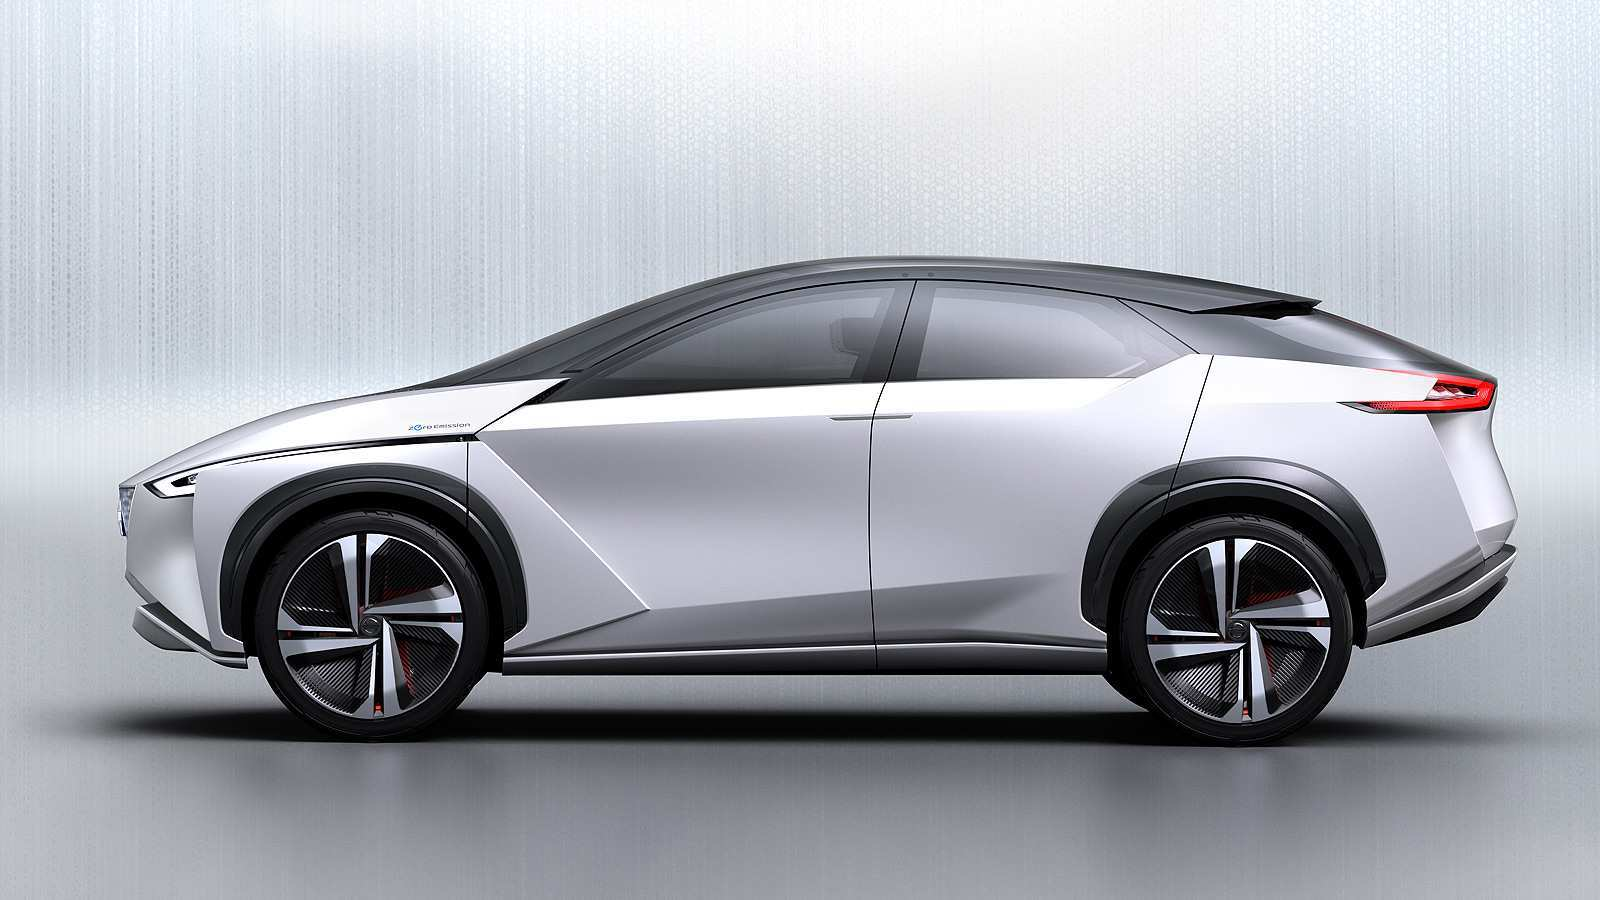 19 Concept of Nissan Modelo 2020 Pricing for Nissan Modelo 2020